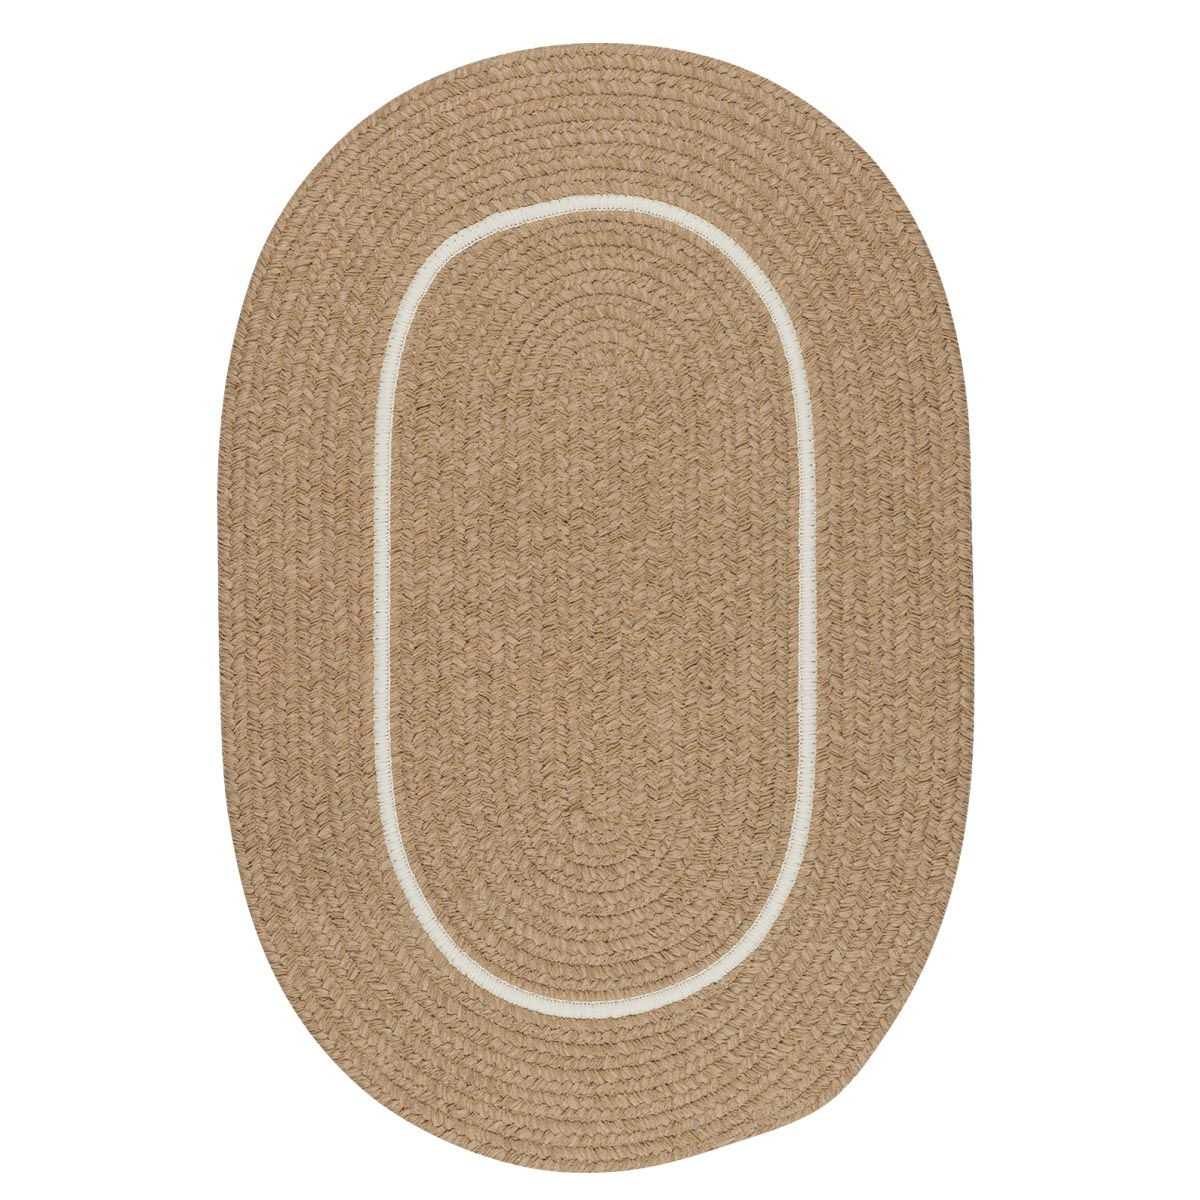 Silhouette Sand Outdoor Braided Oval Rugs